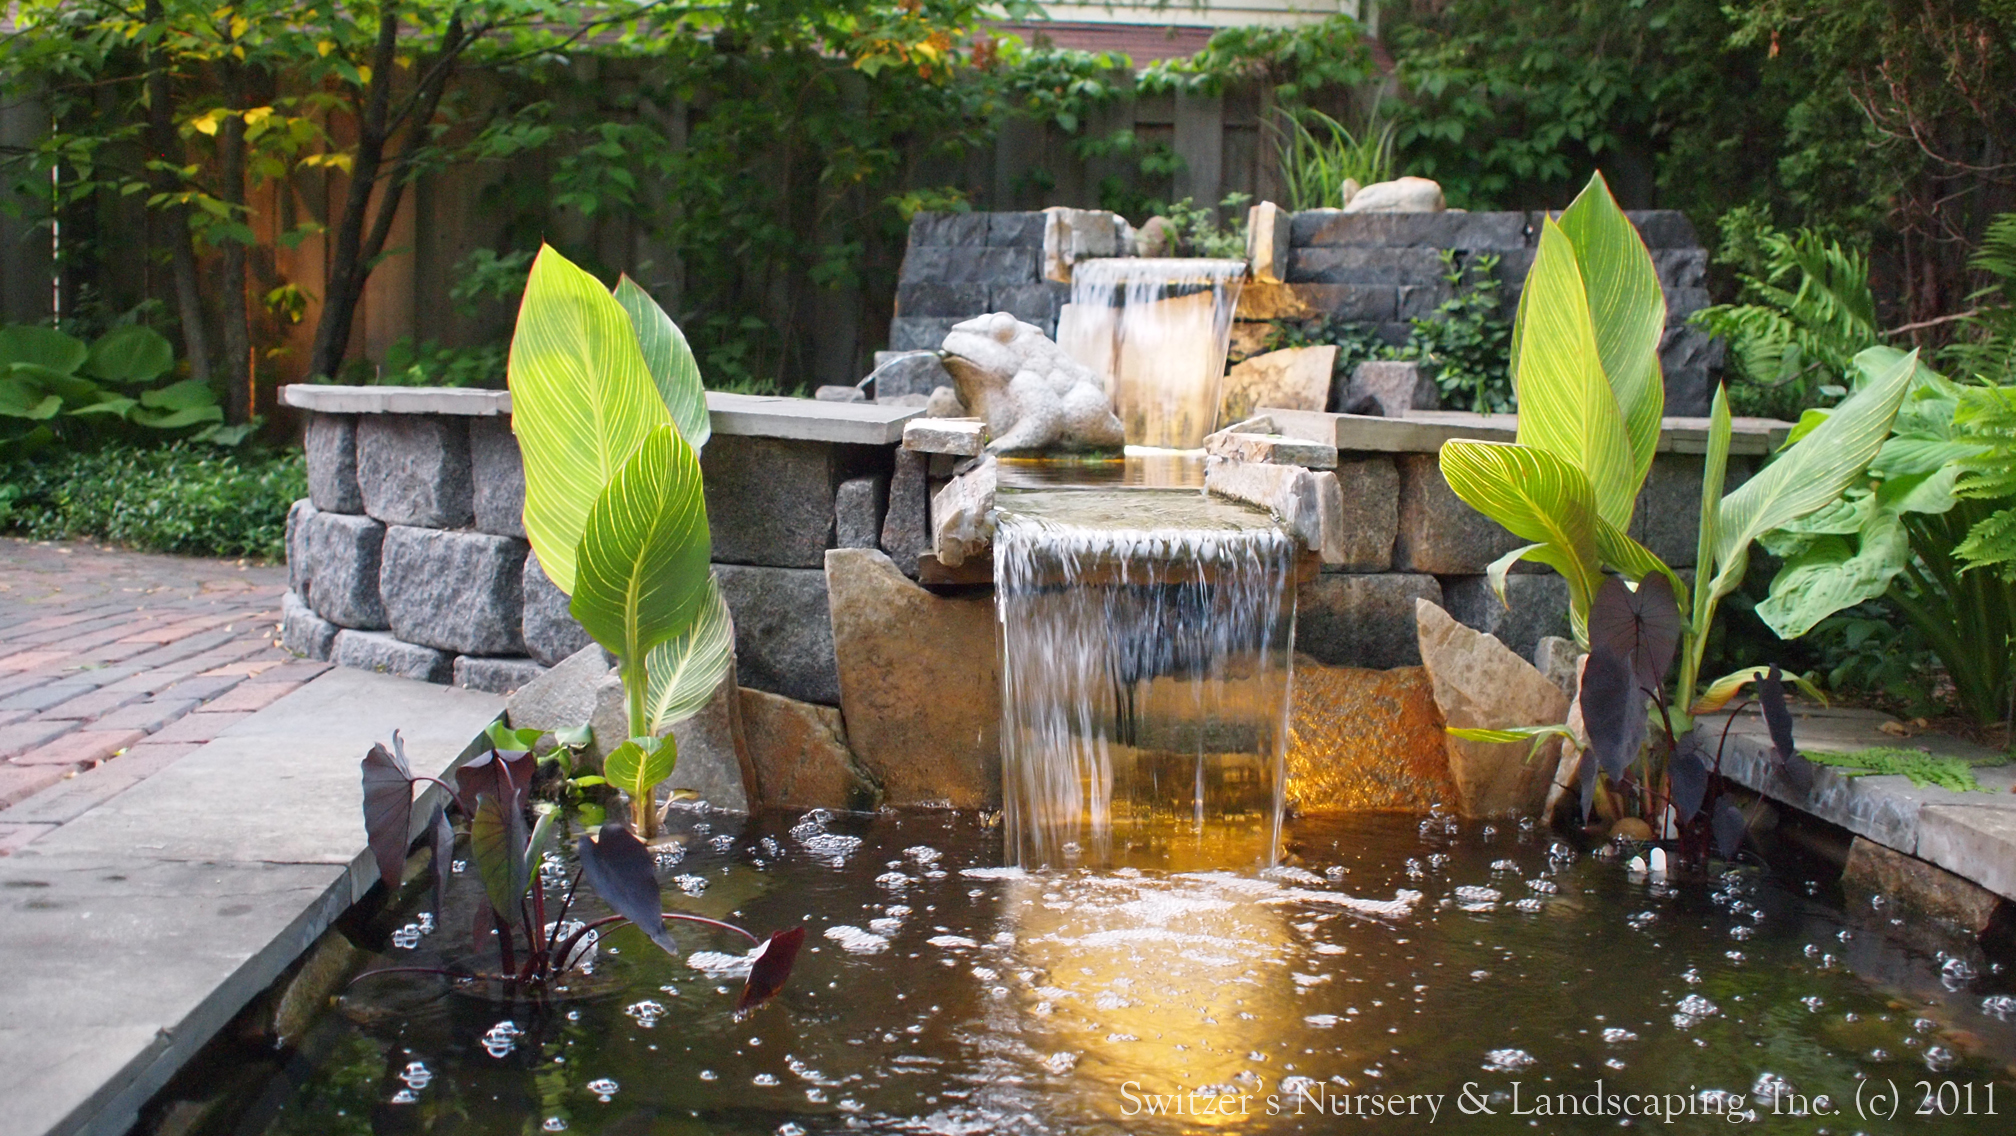 Minnesota landscape design inspired by bali natural for Water garden design